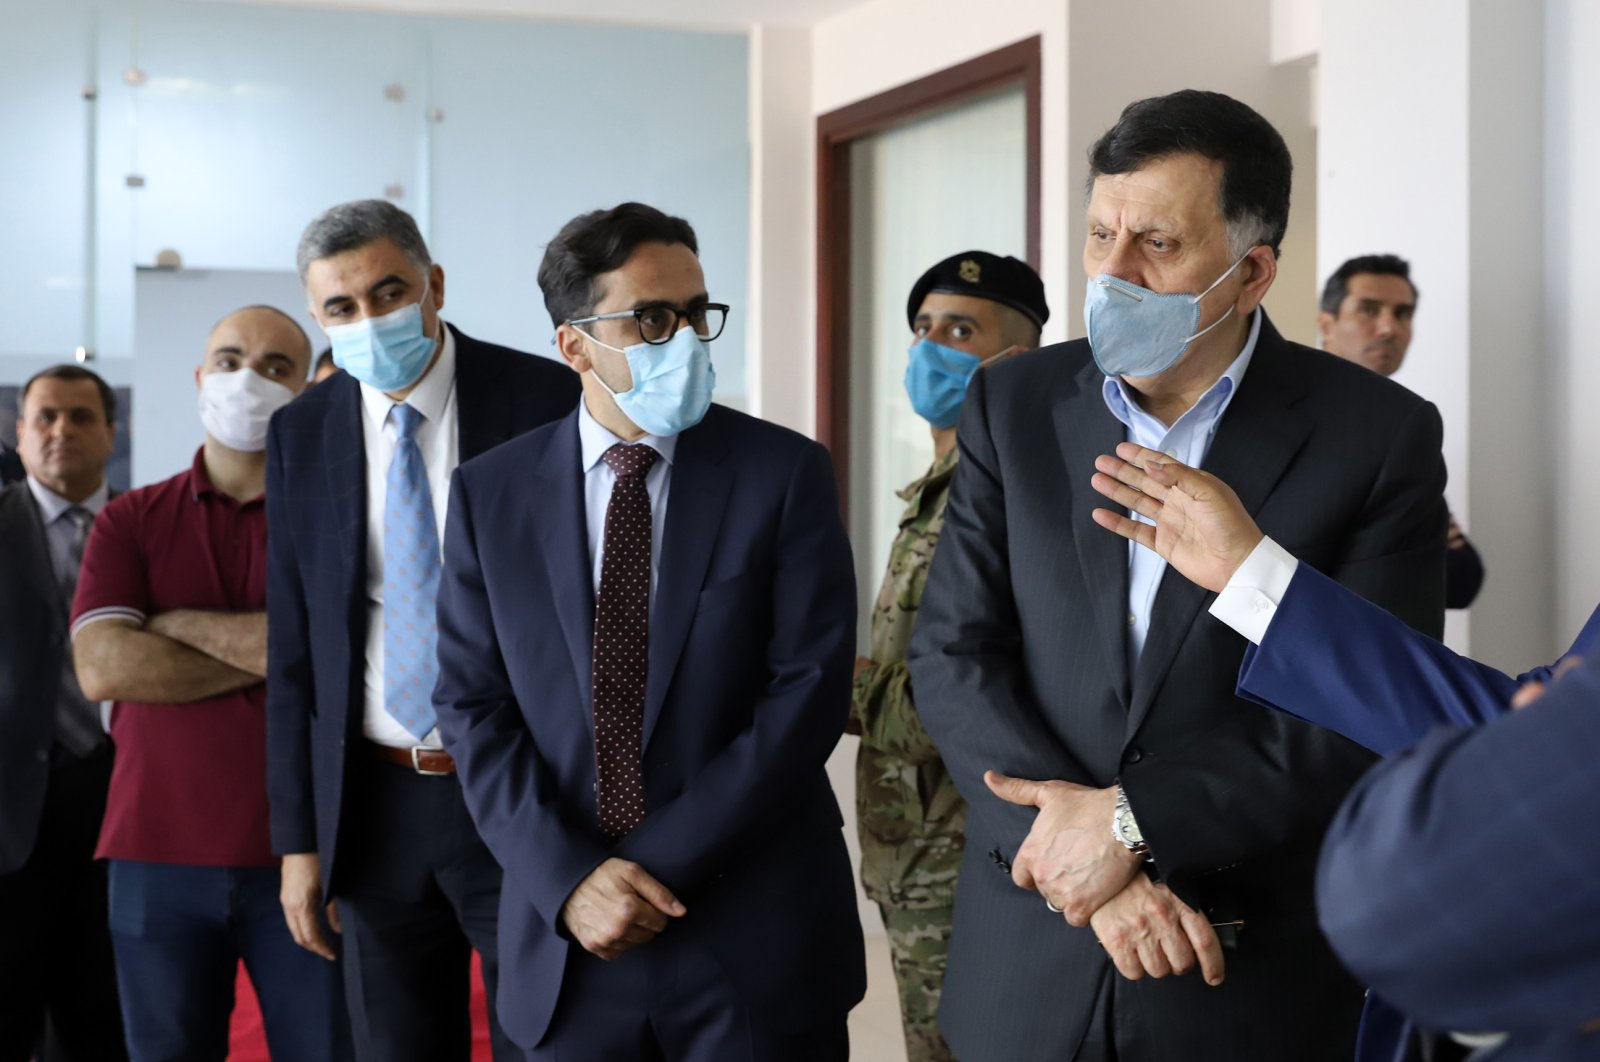 Fayez al-Sarraj (R), prime minister of Libya's U.N.-recognized Government of National Accord (GNA), visits a COVID-19 response center in the capital Tripoli, Libya, May 4, 2020. (AFP Photo )